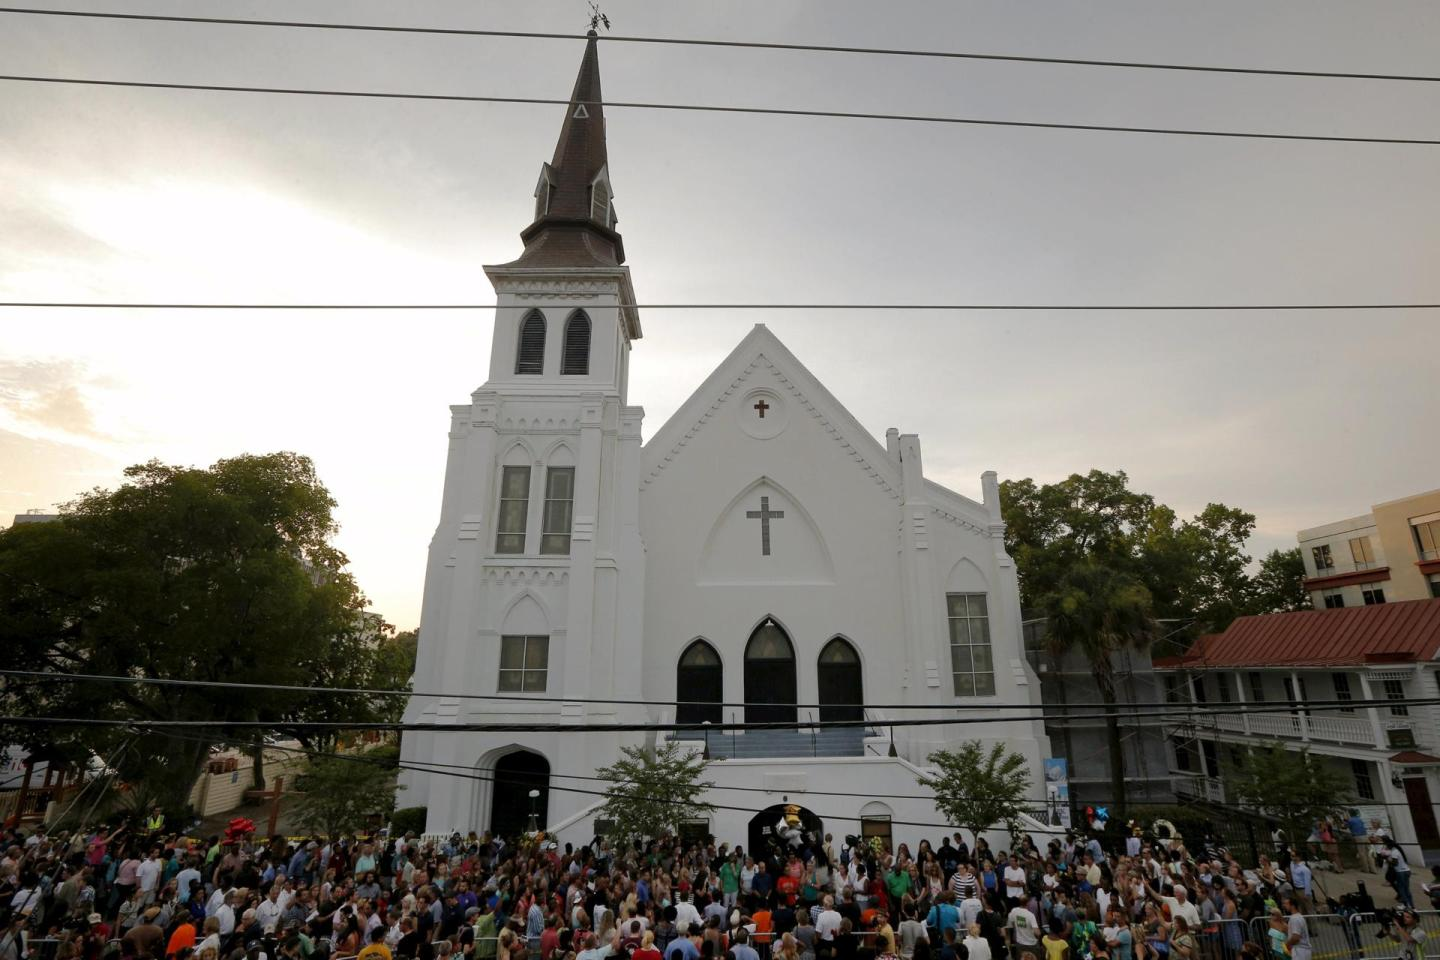 Emanuel African Methodist Episcopal Church by Bryan Snyder, Reuters